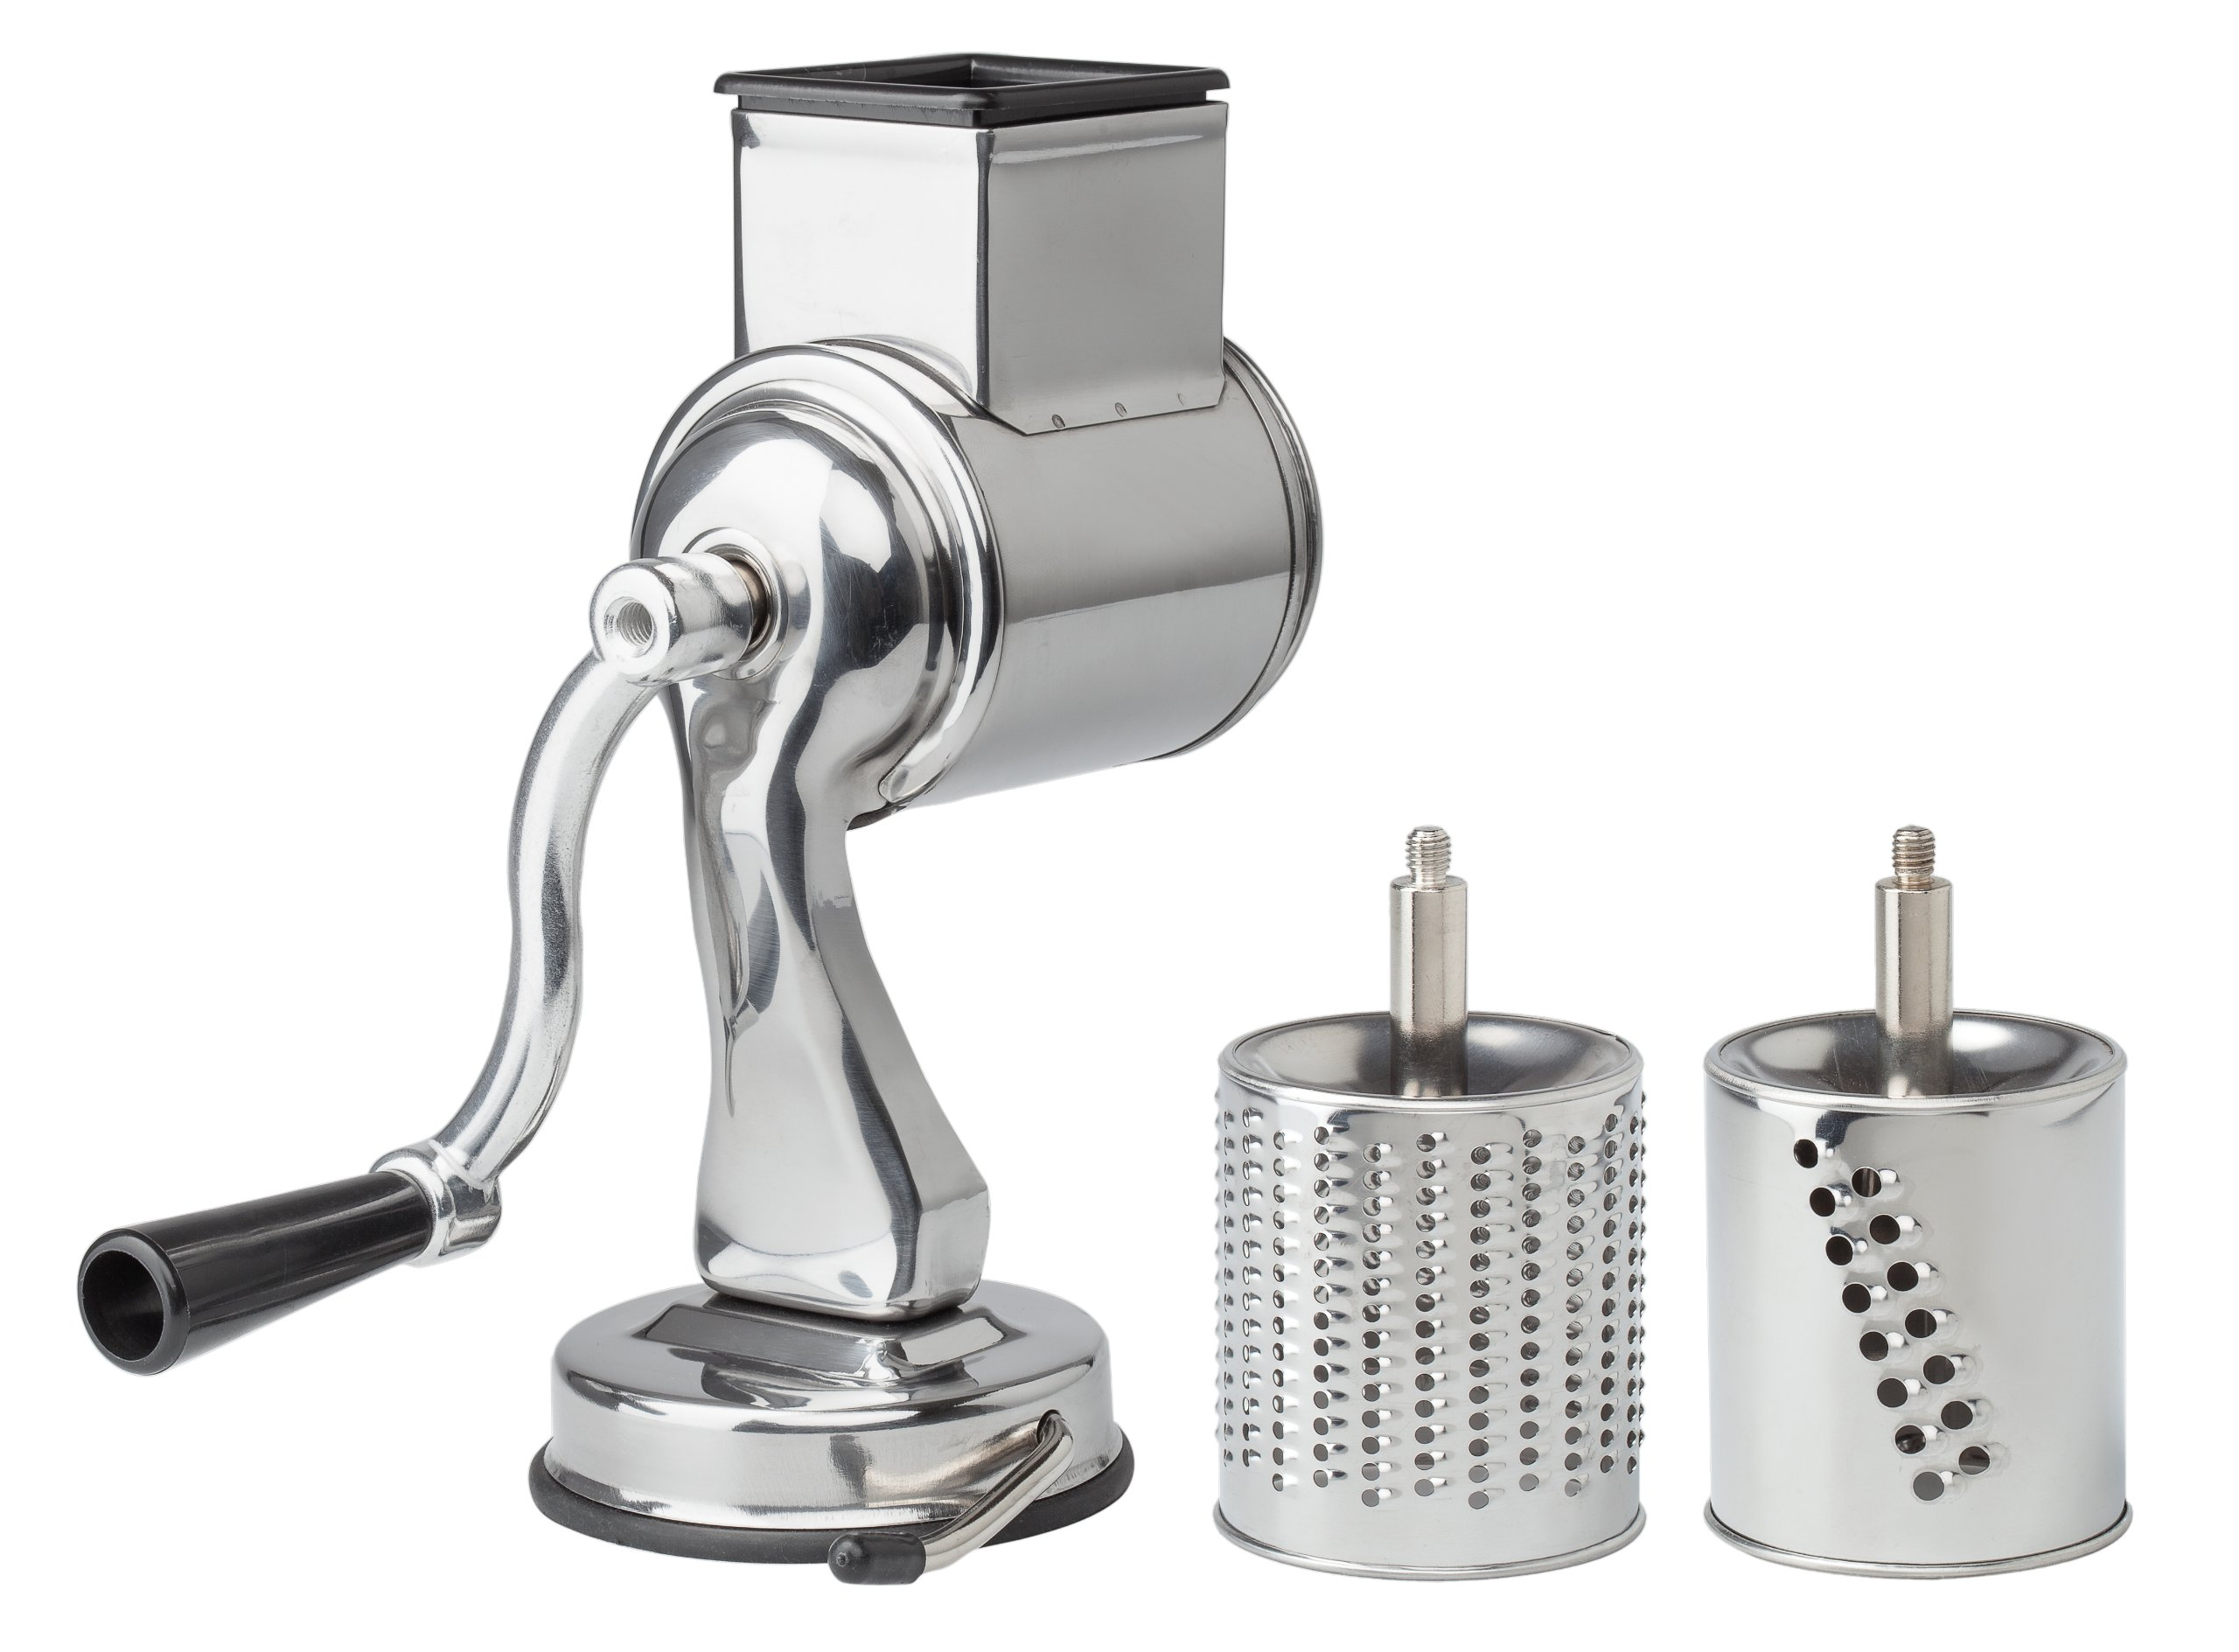 Fantes Cheese Grater with Suction-Base and 2 Drums, The Italian Market Original since 1906